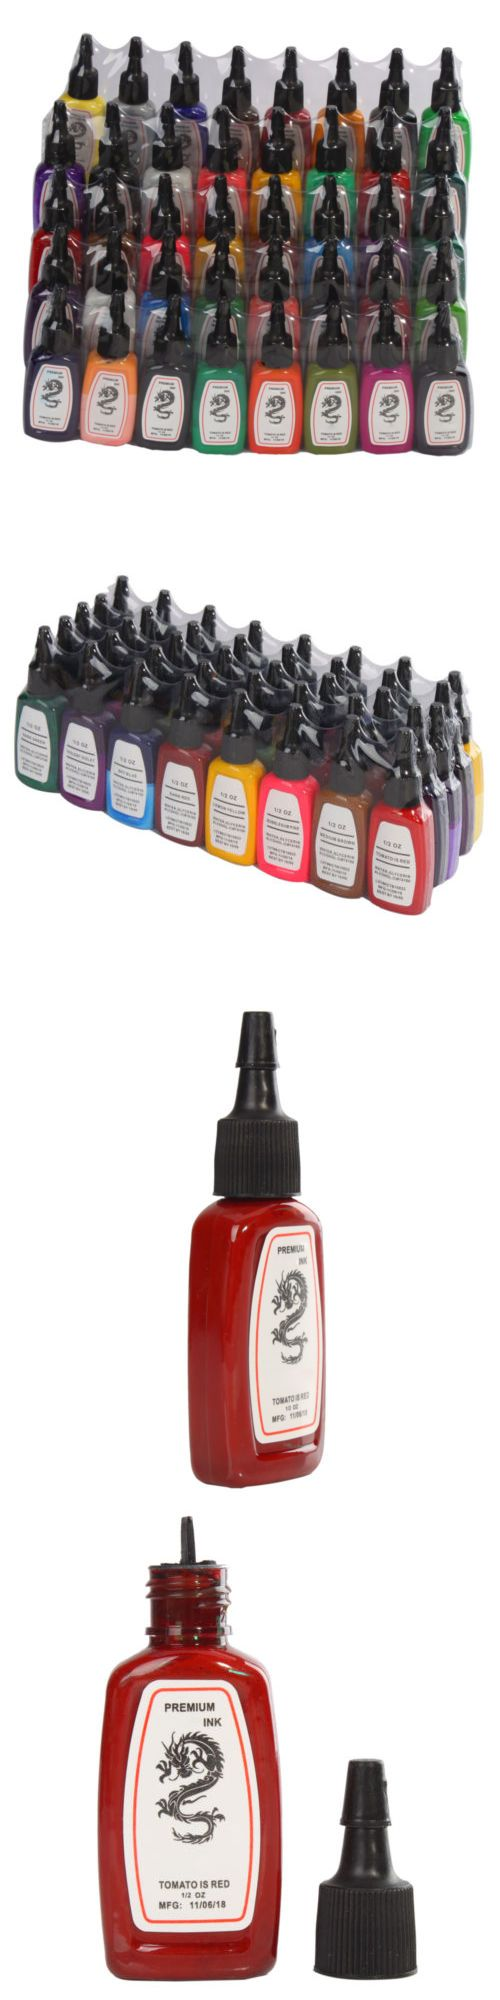 Tattoo Inks: New Pro Tattoo Inks 40 Color 1 2Oz Pigment Set For Tattoo Machine Gun Kit -> BUY IT NOW ONLY: $37.59 on eBay!